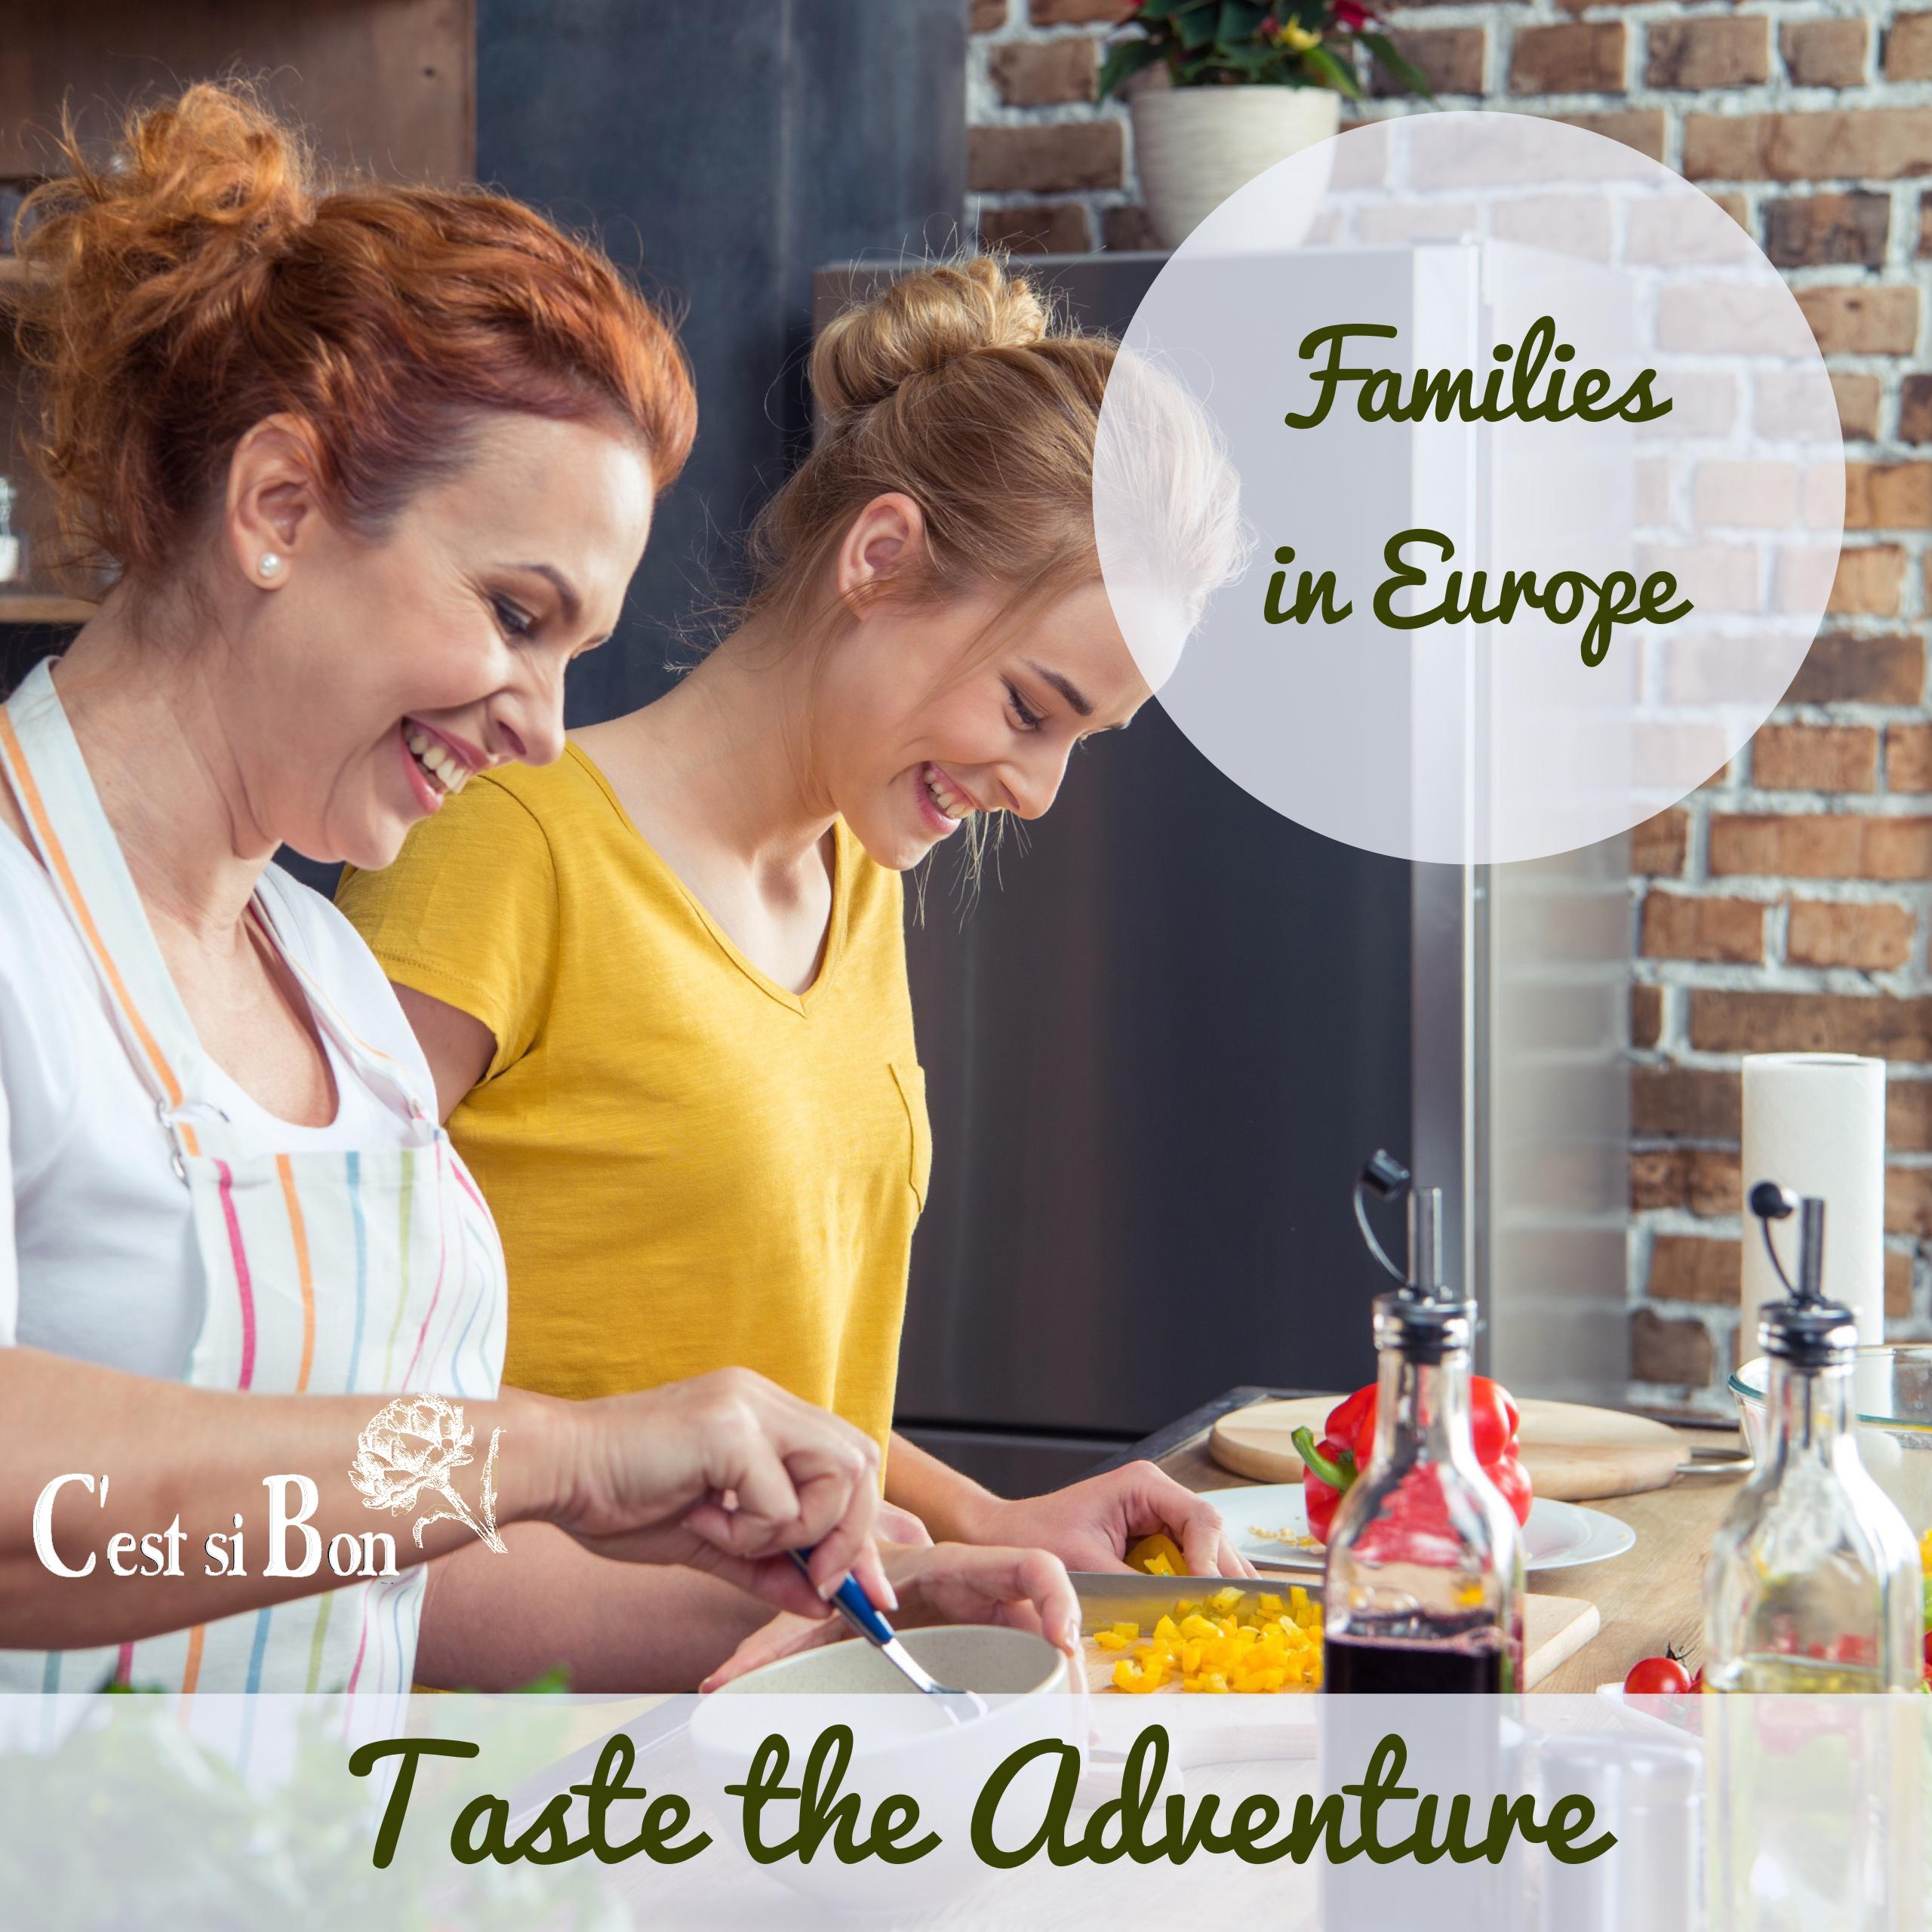 Taste the Adventure Families in Europe